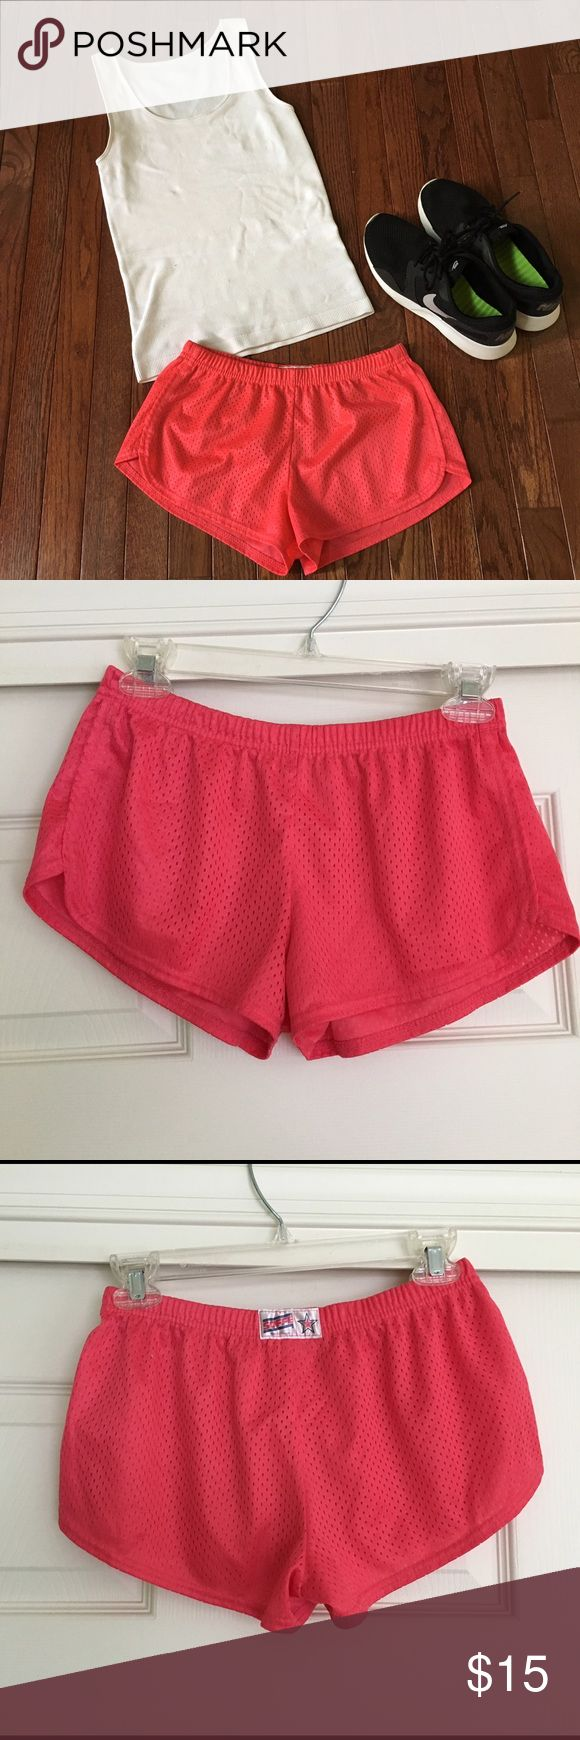 "Pink Soffee Shorts ""Jr Teeny Tiny"" Soffe shorts. Very short. In perfect condition. Super soft hot pink workout shorts! Adorable shorts perfect for summer workouts! Soffe Shorts"